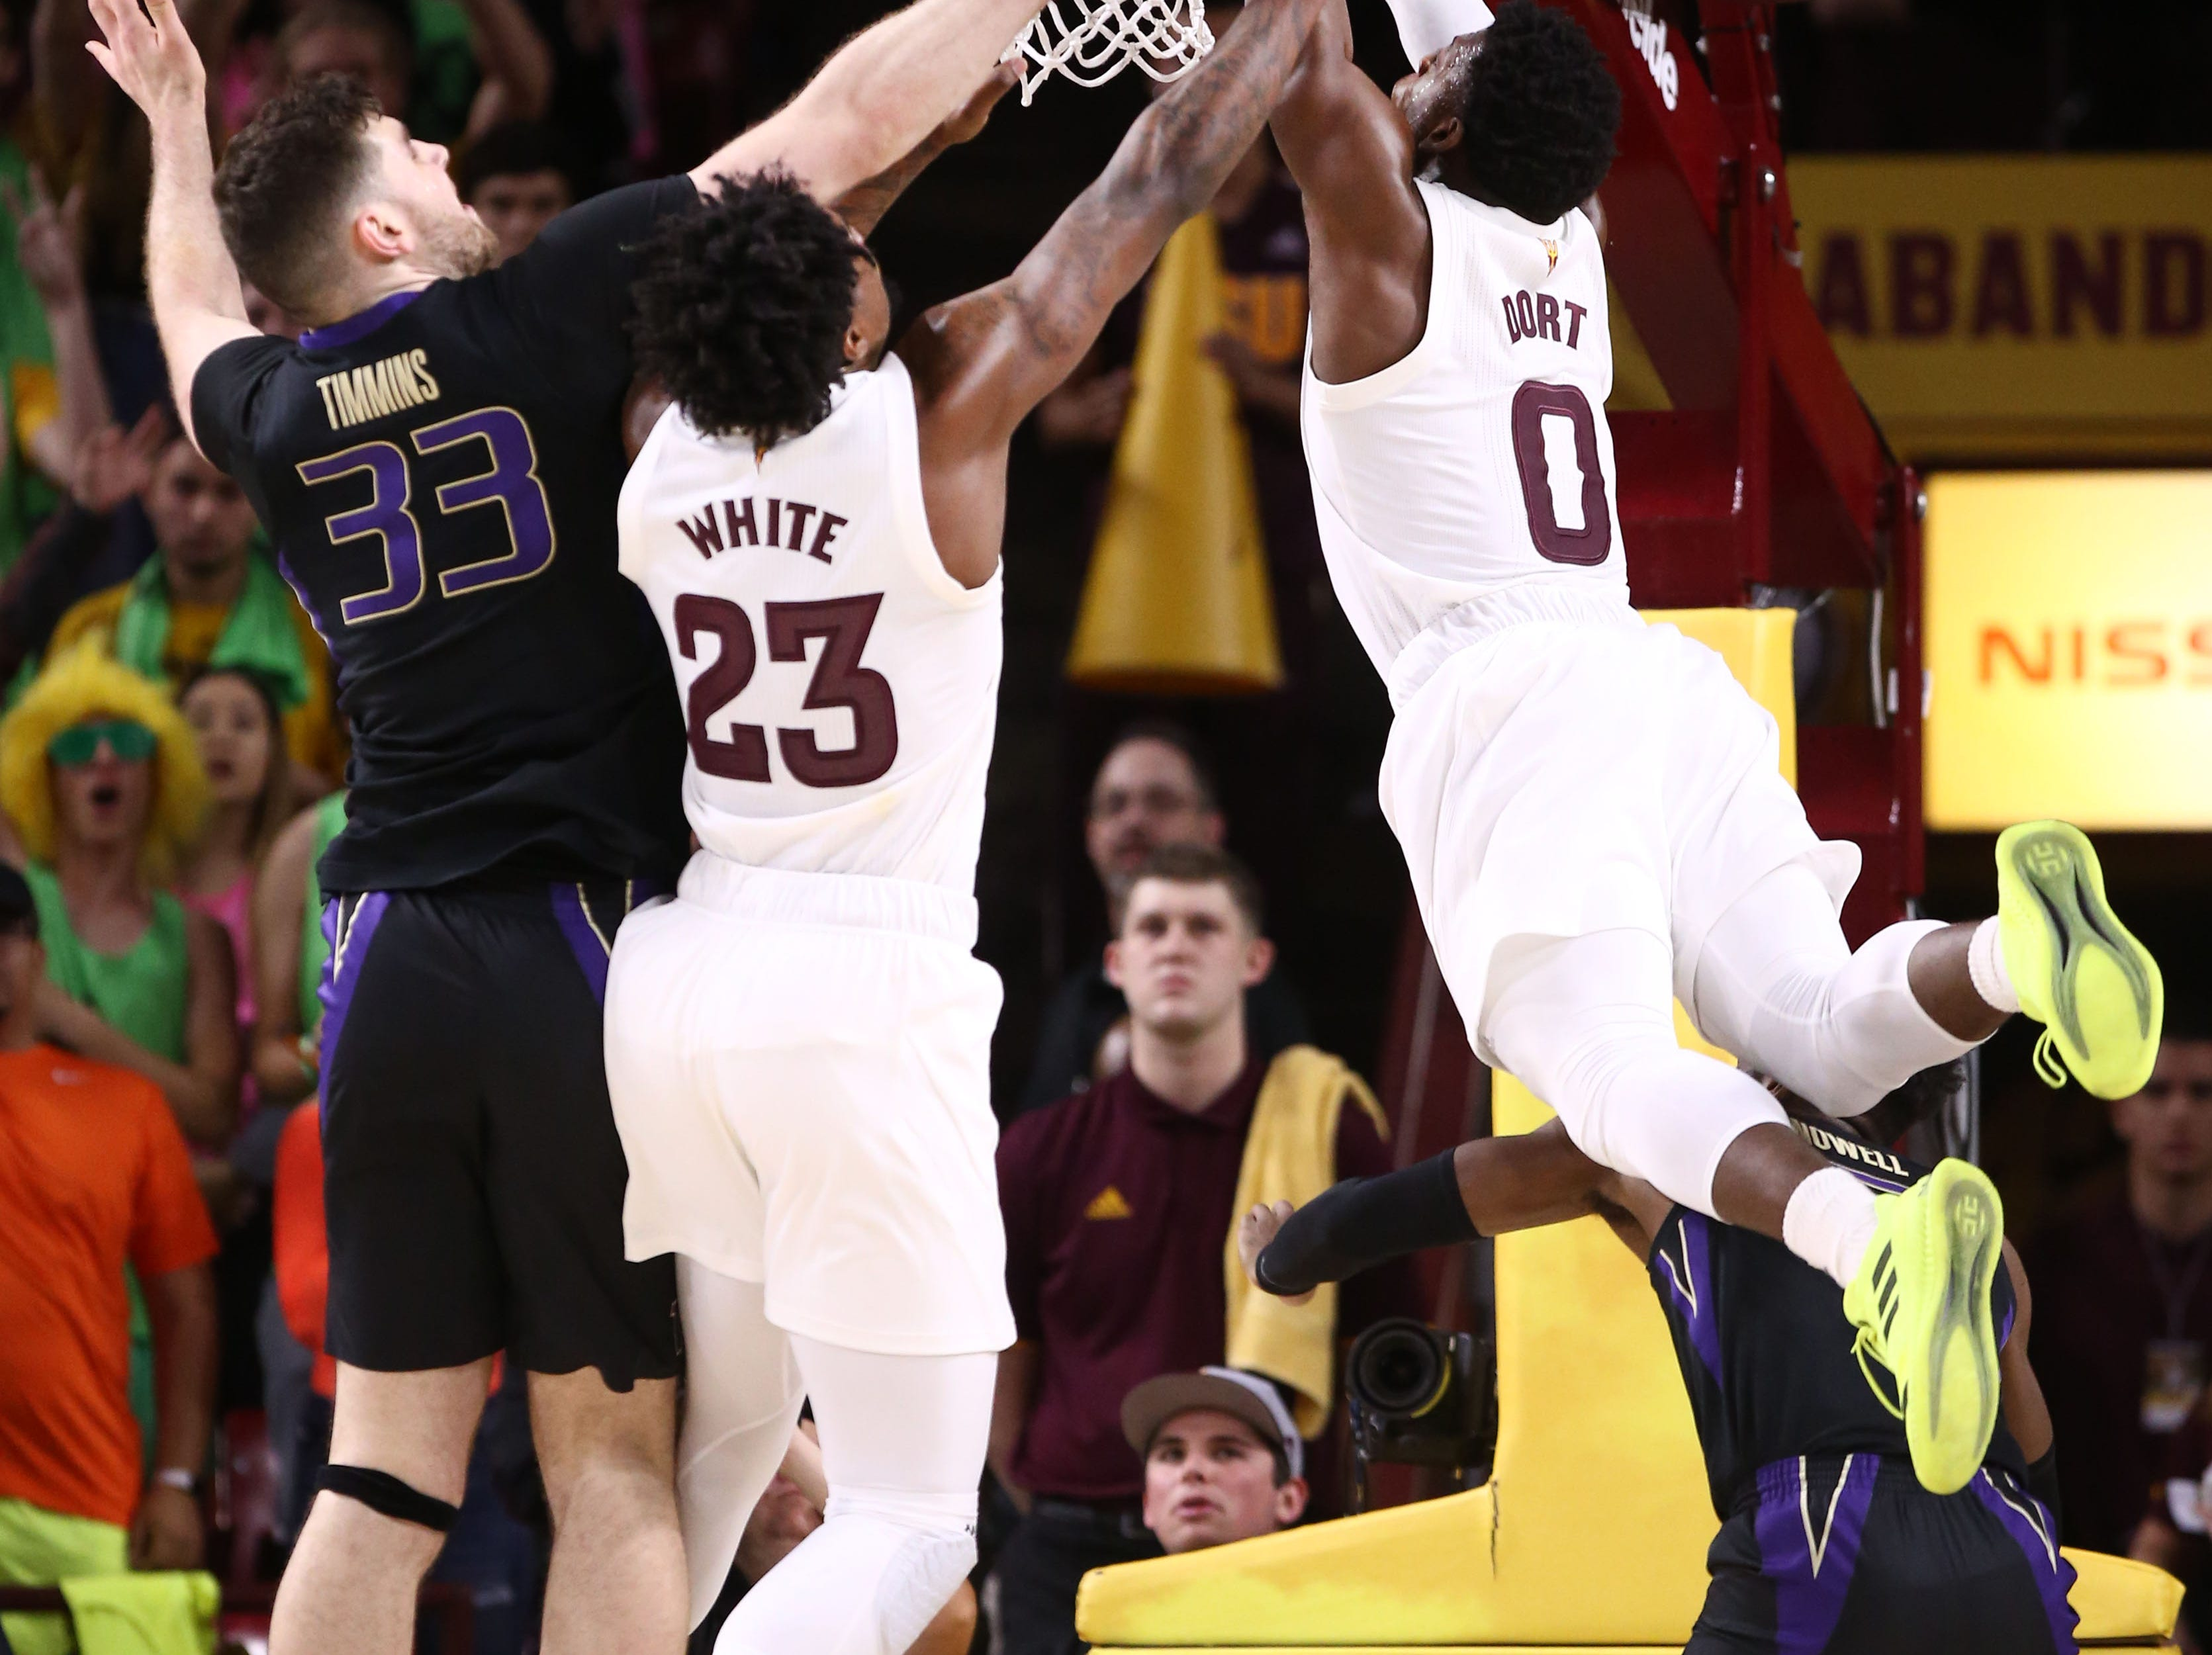 Arizona State Sun Devils guard Luguentz Dort (0) dunks the ball against the Washington Huskies in the first half on Feb. 9 at Wells Fargo Arena in Tempe.